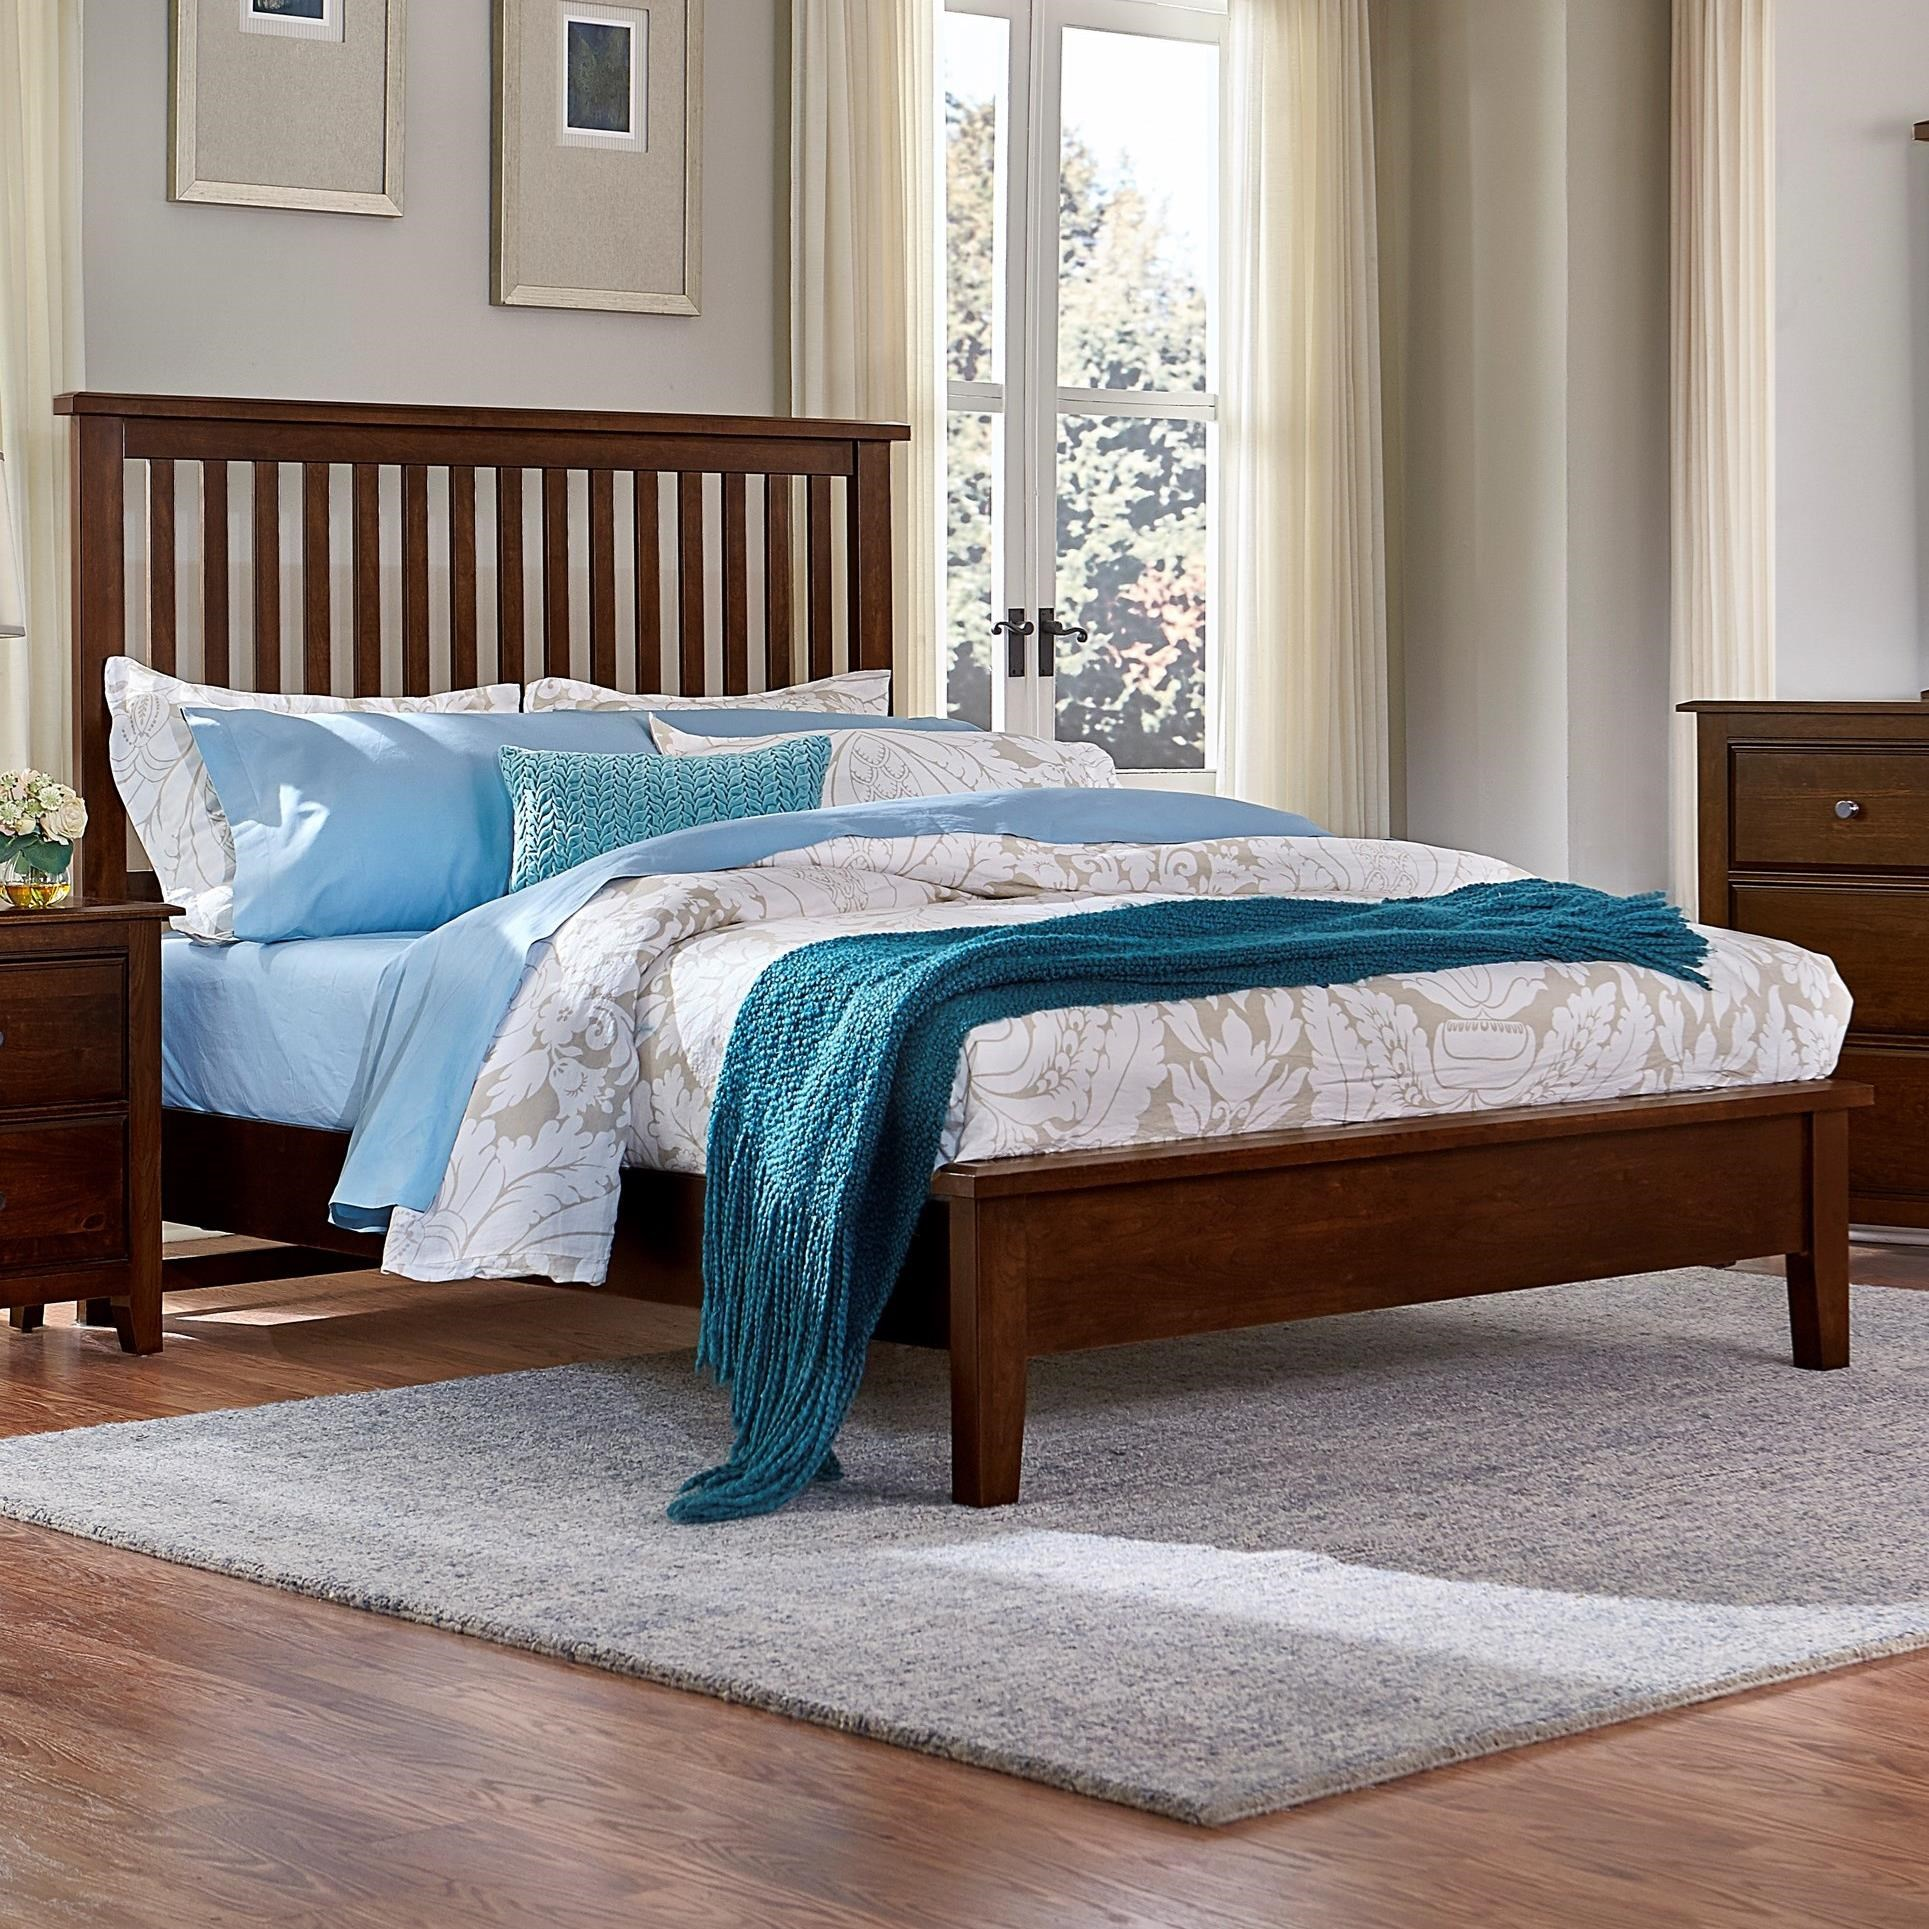 Artisan Choices Queen Slat Bed with Low Profile Footboard by Artisan & Post at Rooms and Rest